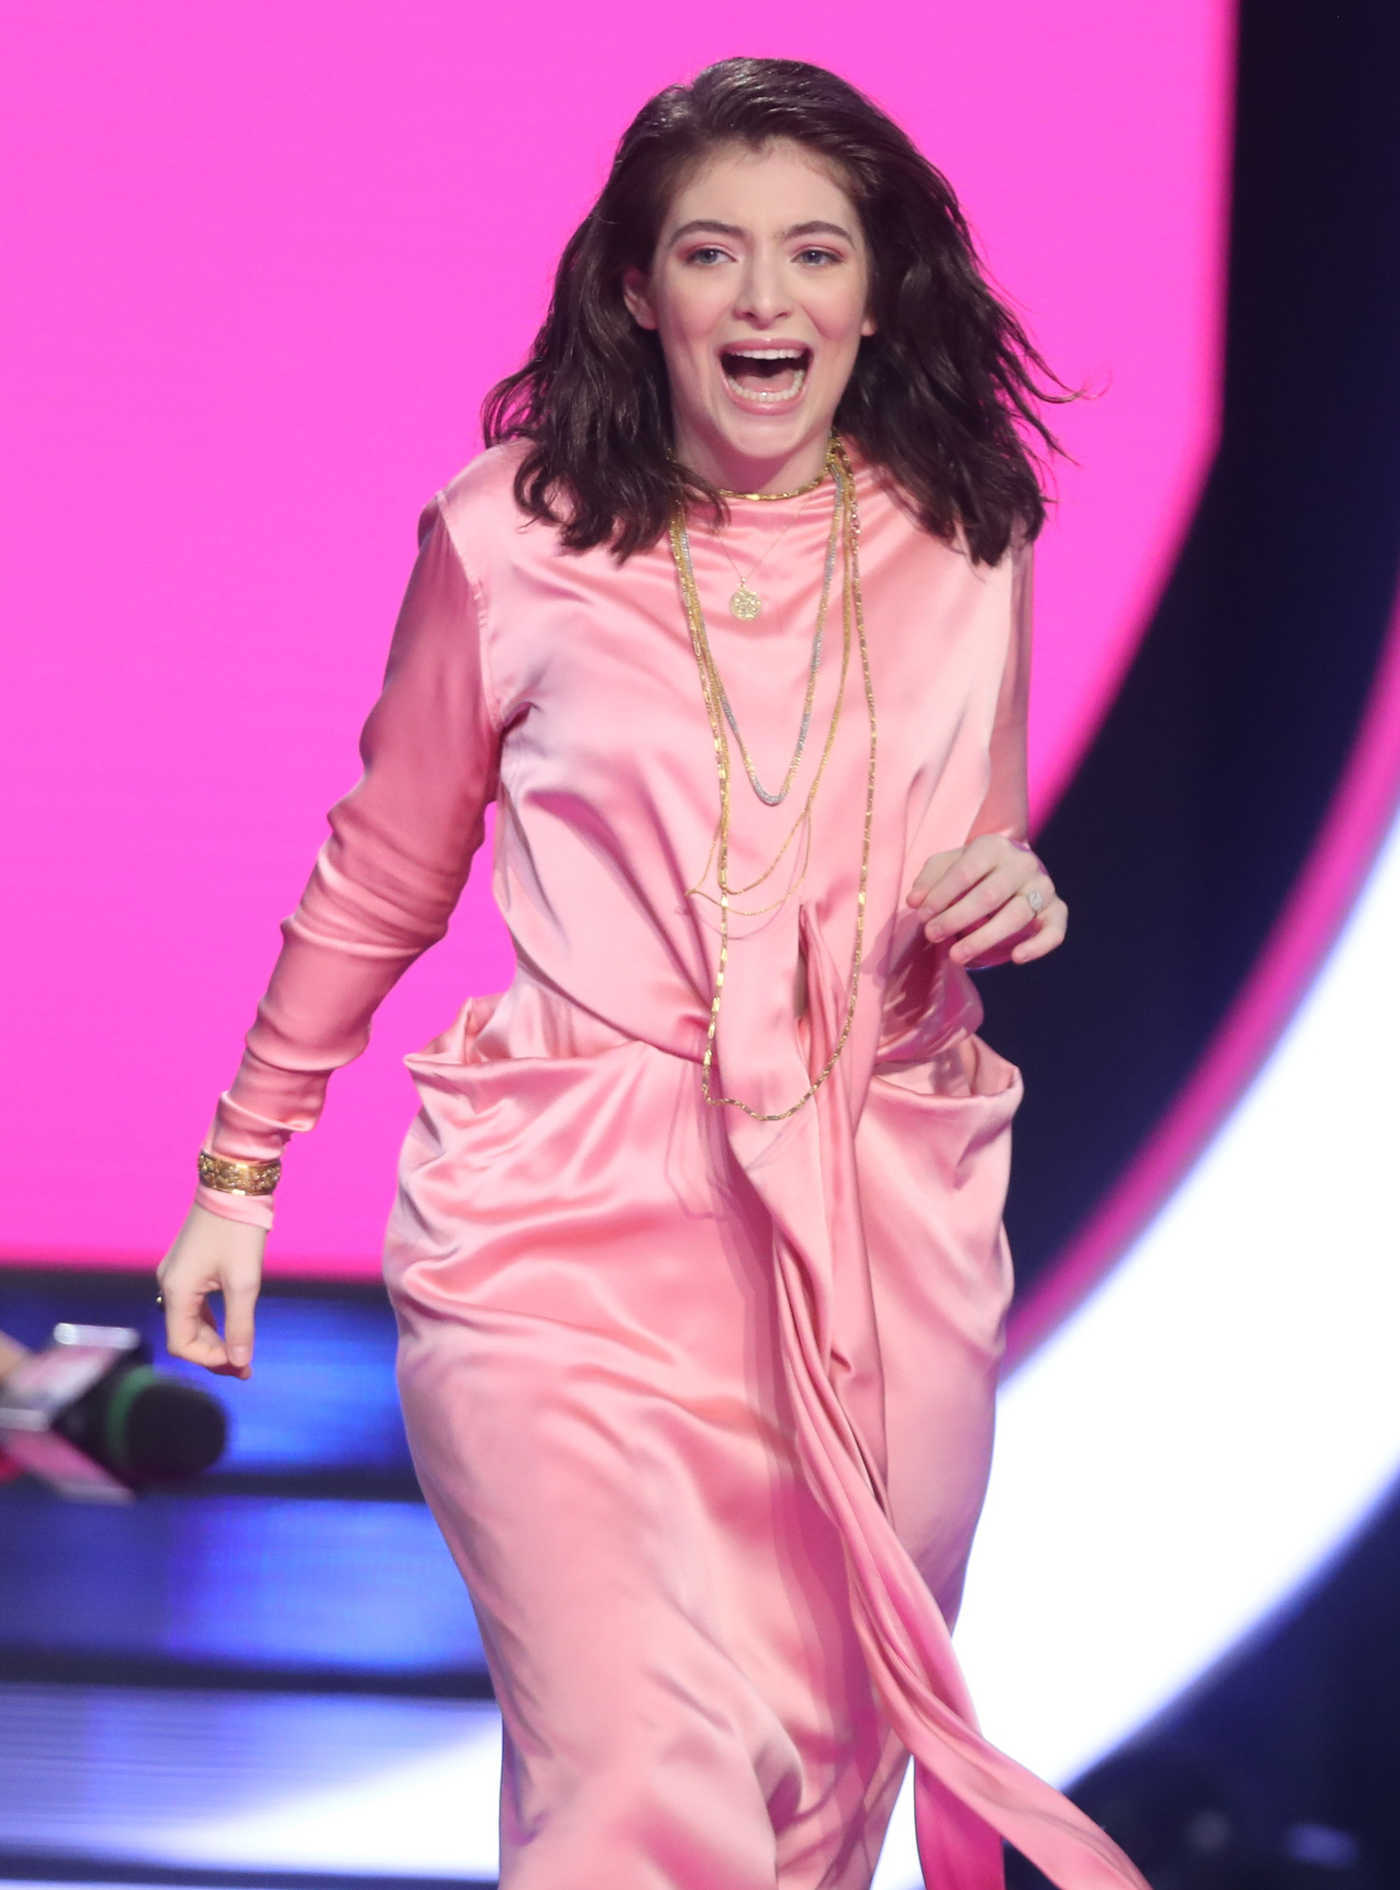 Lorde Arrives at the iHeartRadio MuchMusic Video Awards in Toronto 06/18/2017